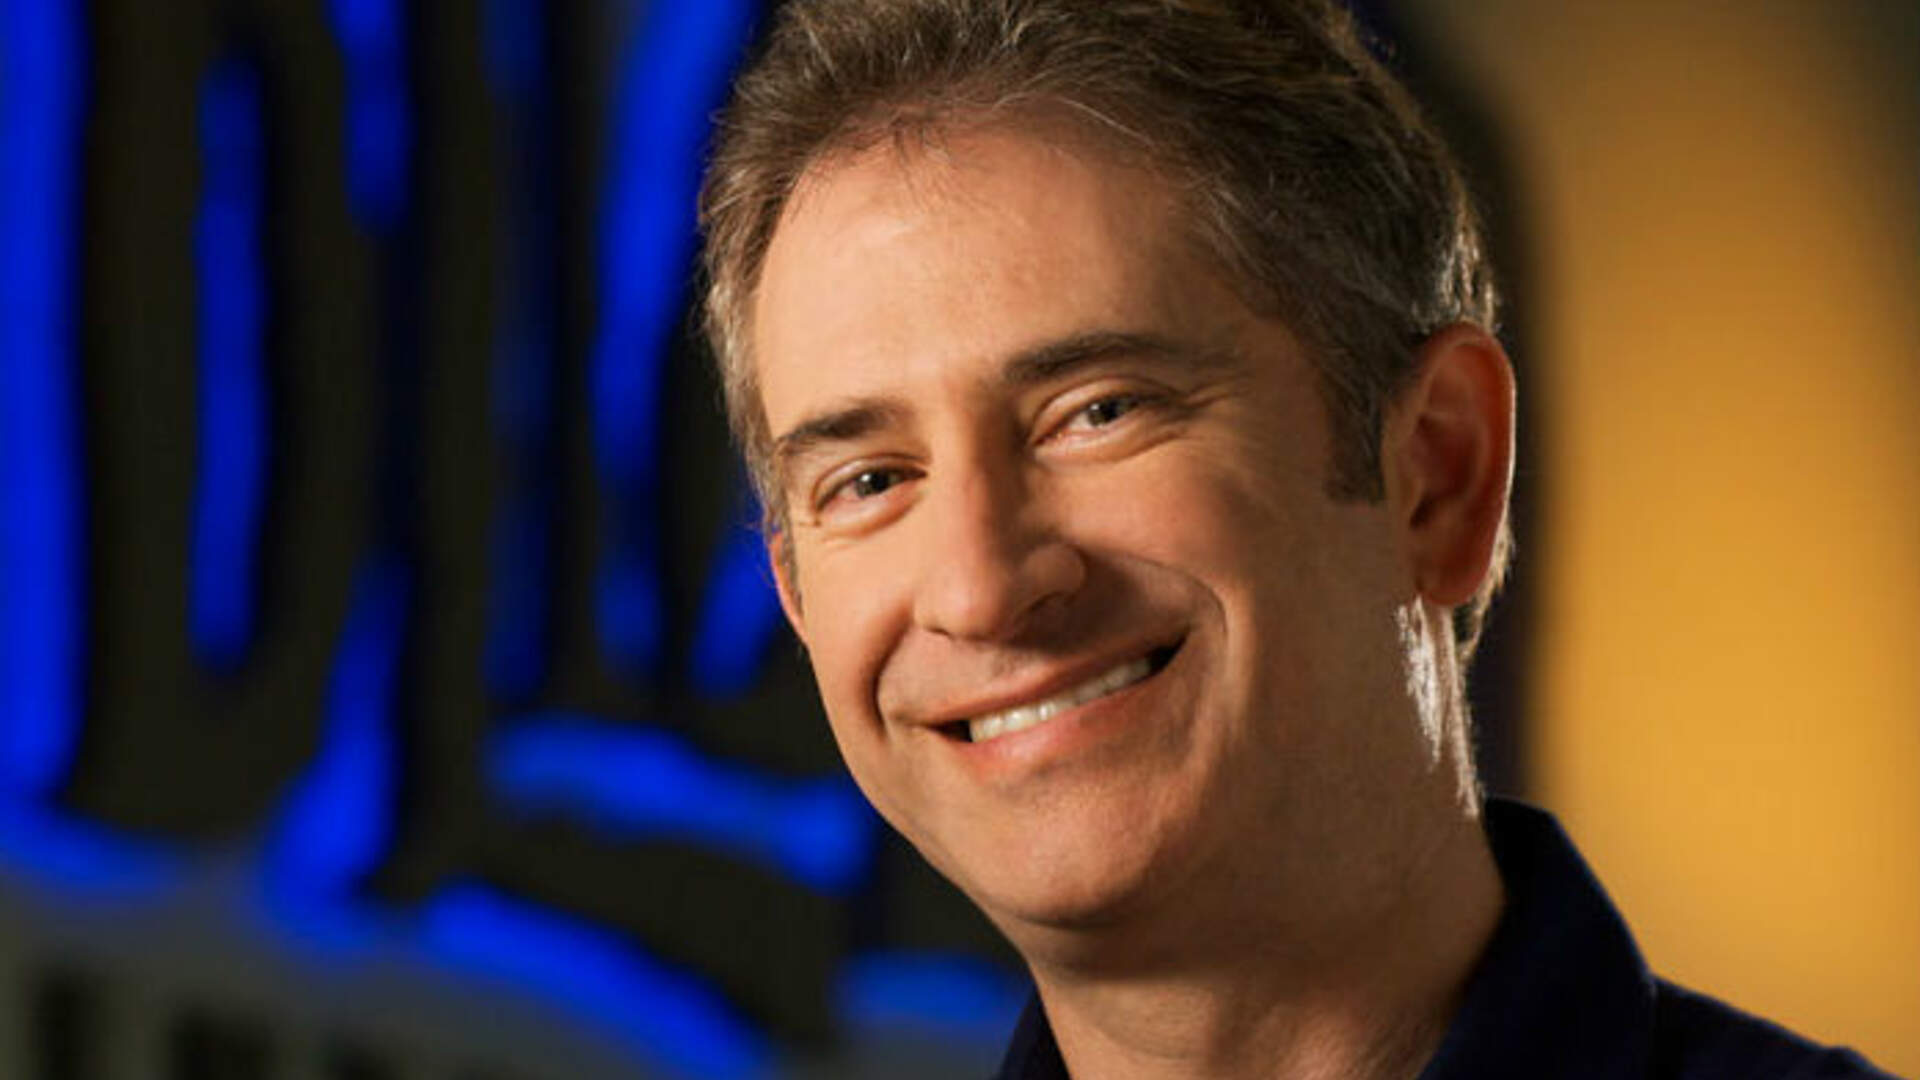 Blizzard Co-Founder Mike Morhaime Steps Down as President